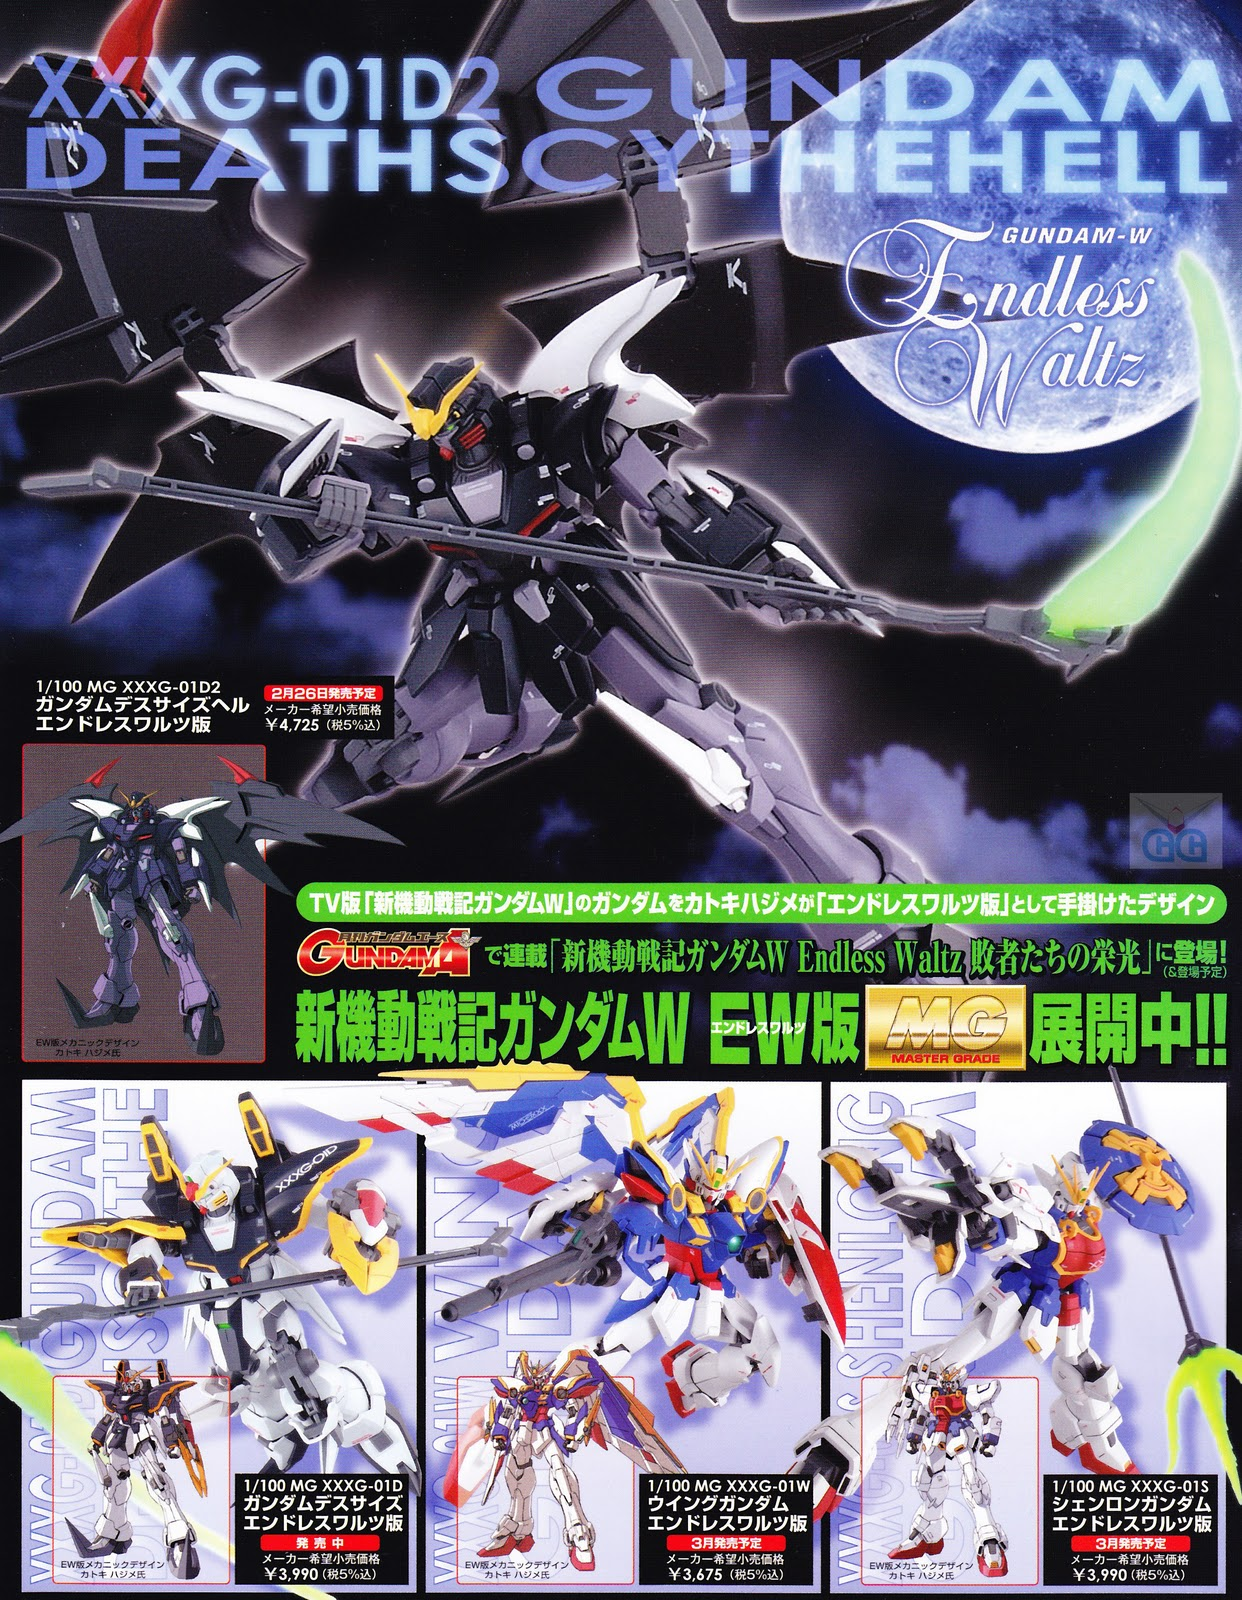 Ew Series Tumacher Gunpla Inochi Mg Gundam Wing Ew Series Promotional